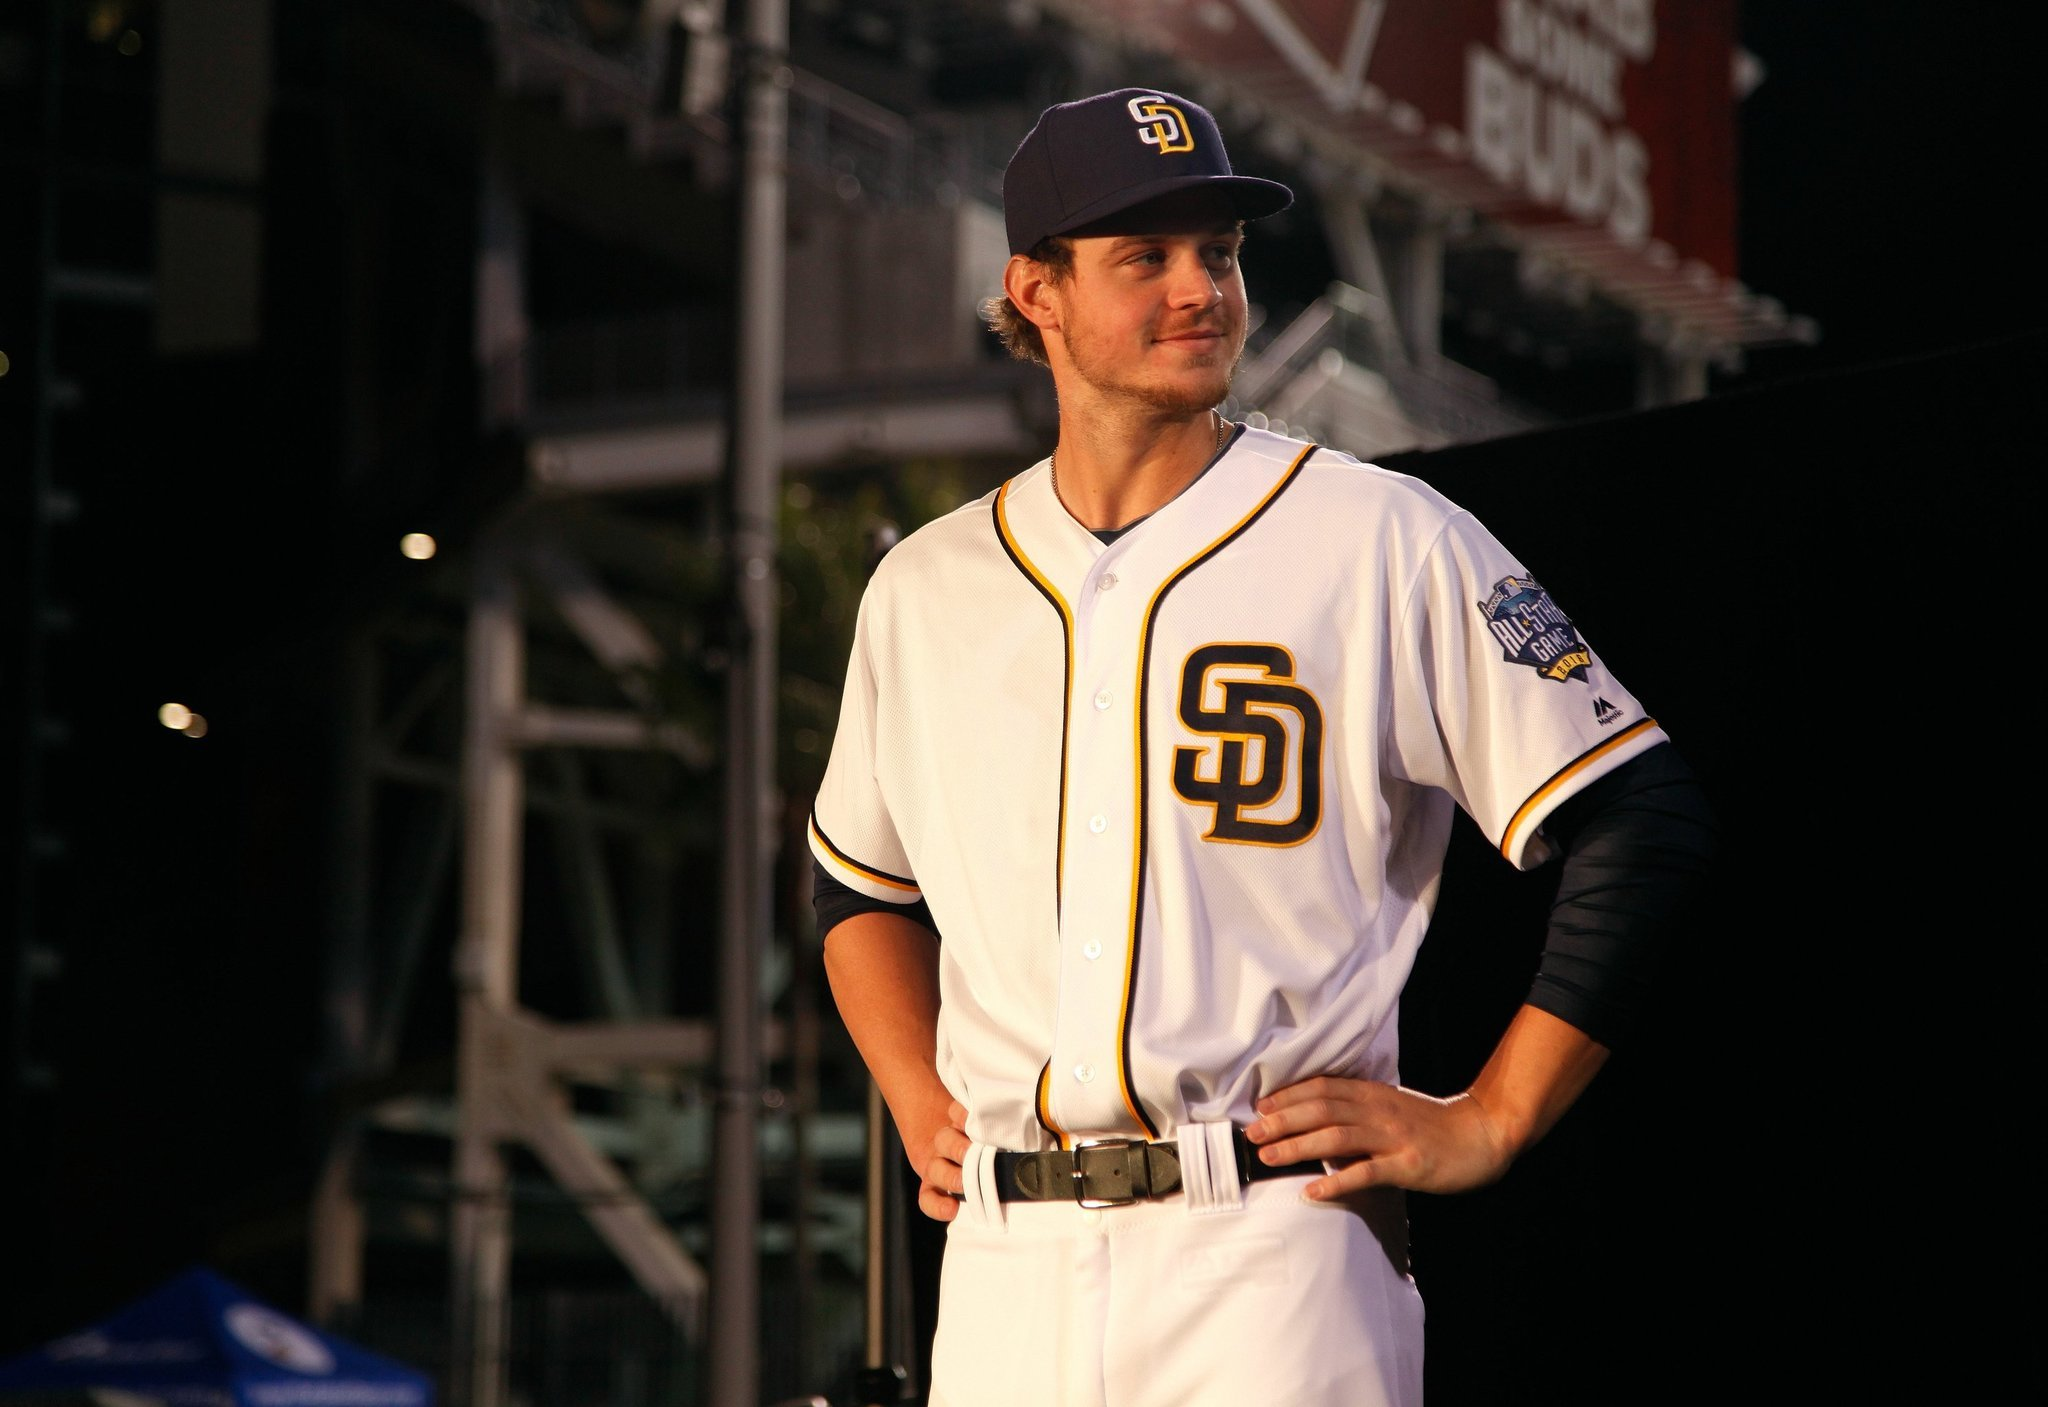 bfcb214e2ee ... Padres unveil new uniforms for 2016 - The San Diego Union-Tr ...